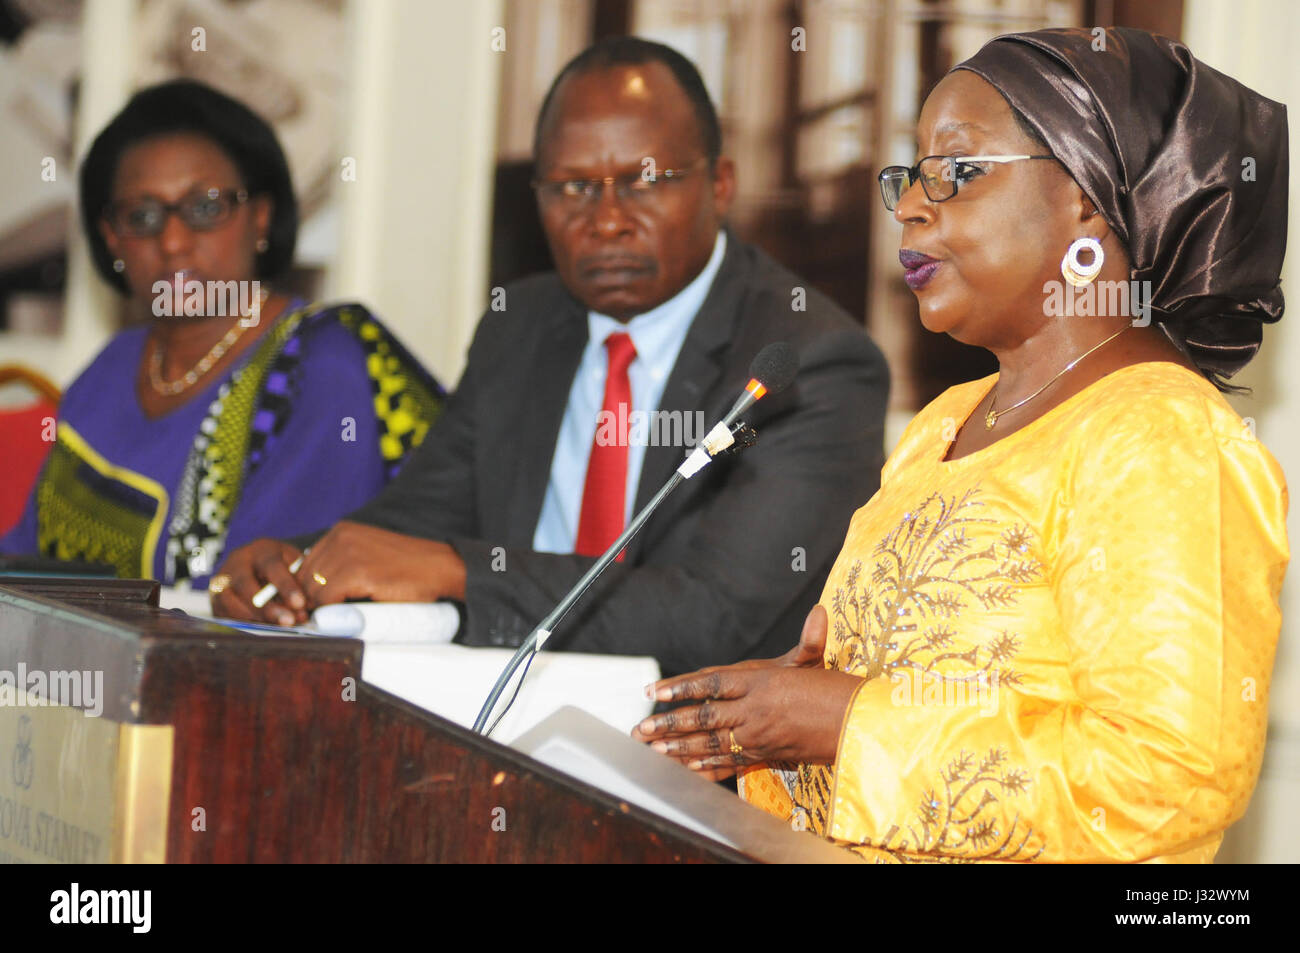 Acting Director Administration and Human Resources Management, African Union, Rekia Mahamoudou, giving a speech - Stock Image